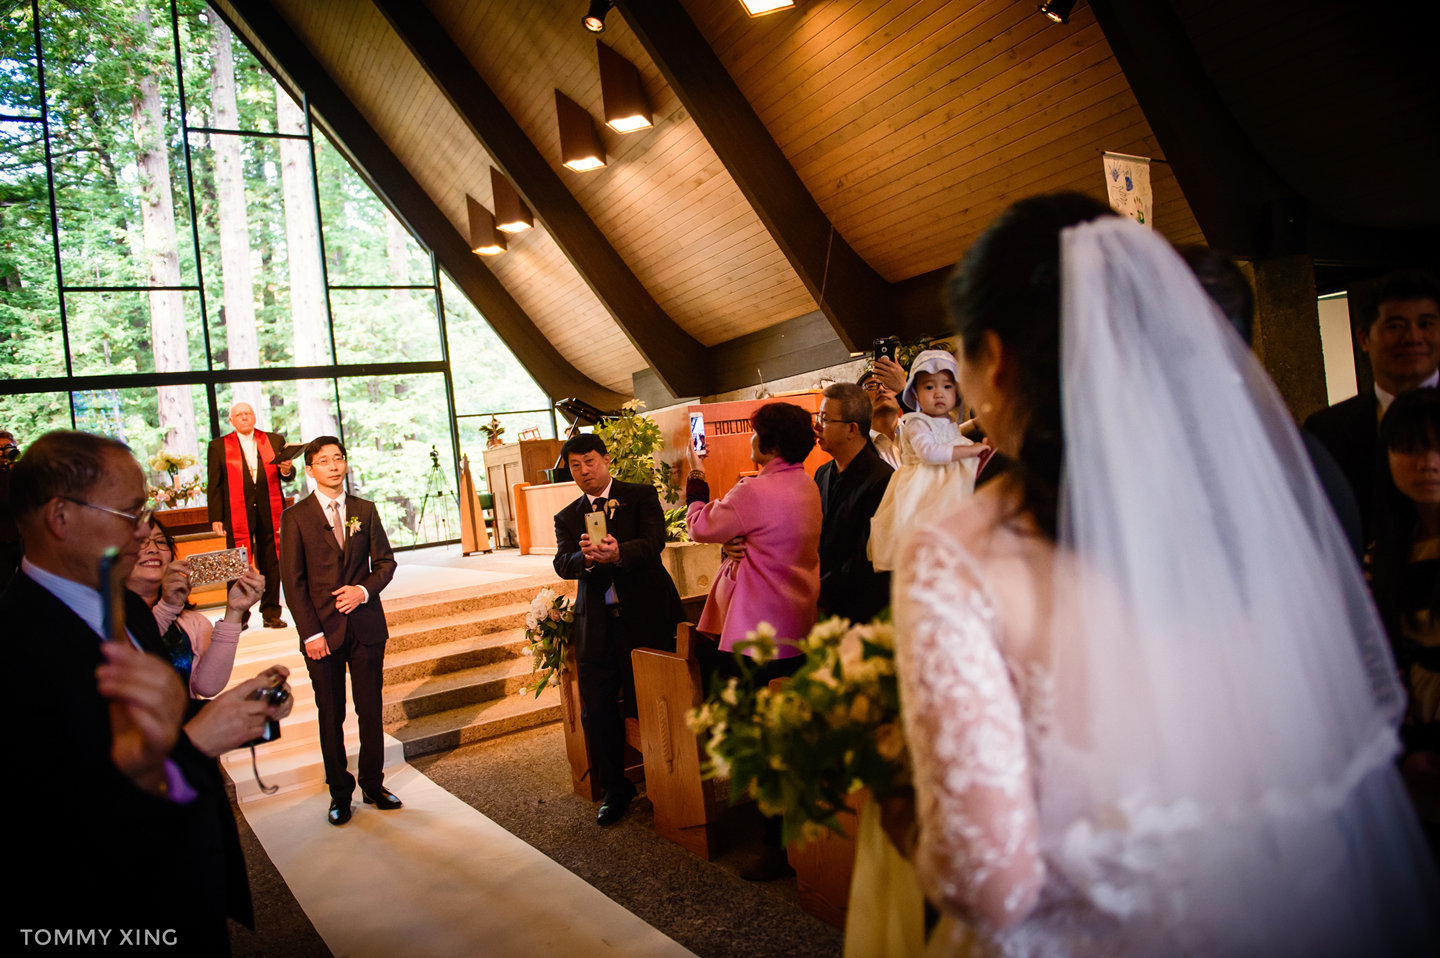 San Francisco Wedding Photography Valley Presbyterian Church WEDDING Tommy Xing Photography 洛杉矶旧金山婚礼婚纱照摄影师067.jpg